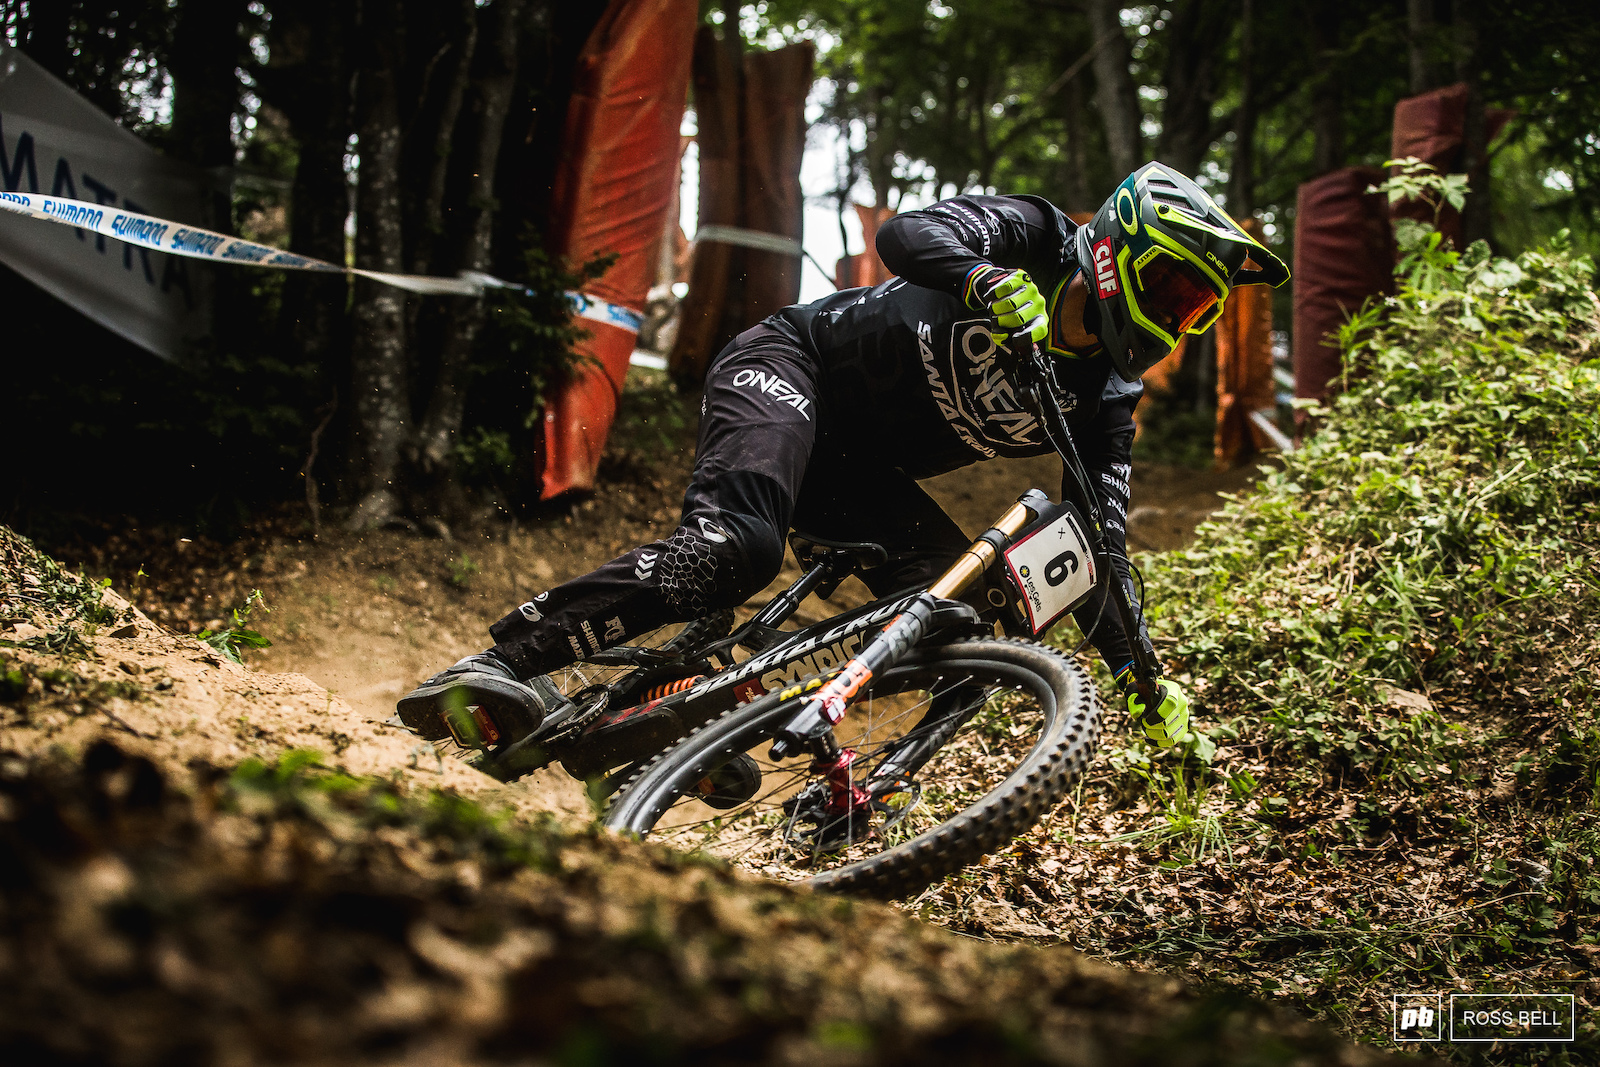 Greg Minnaar dives into the first steep section in the woods.